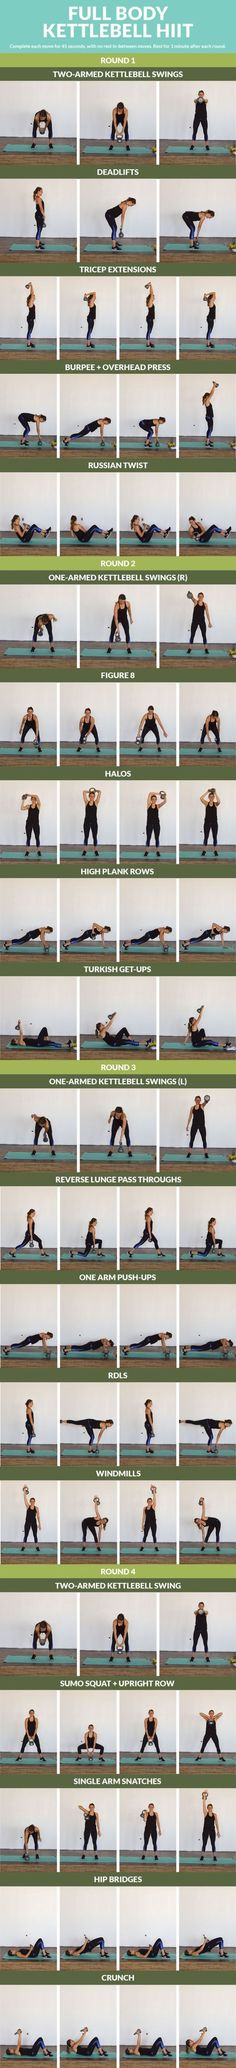 Wont six-pack Abs, gain muscle or weight loss, this workout plan is great for women. with FREE WEEKENDS and No-Gym or equipment ! #WeightLossforWomen #KettlebellWeightloss